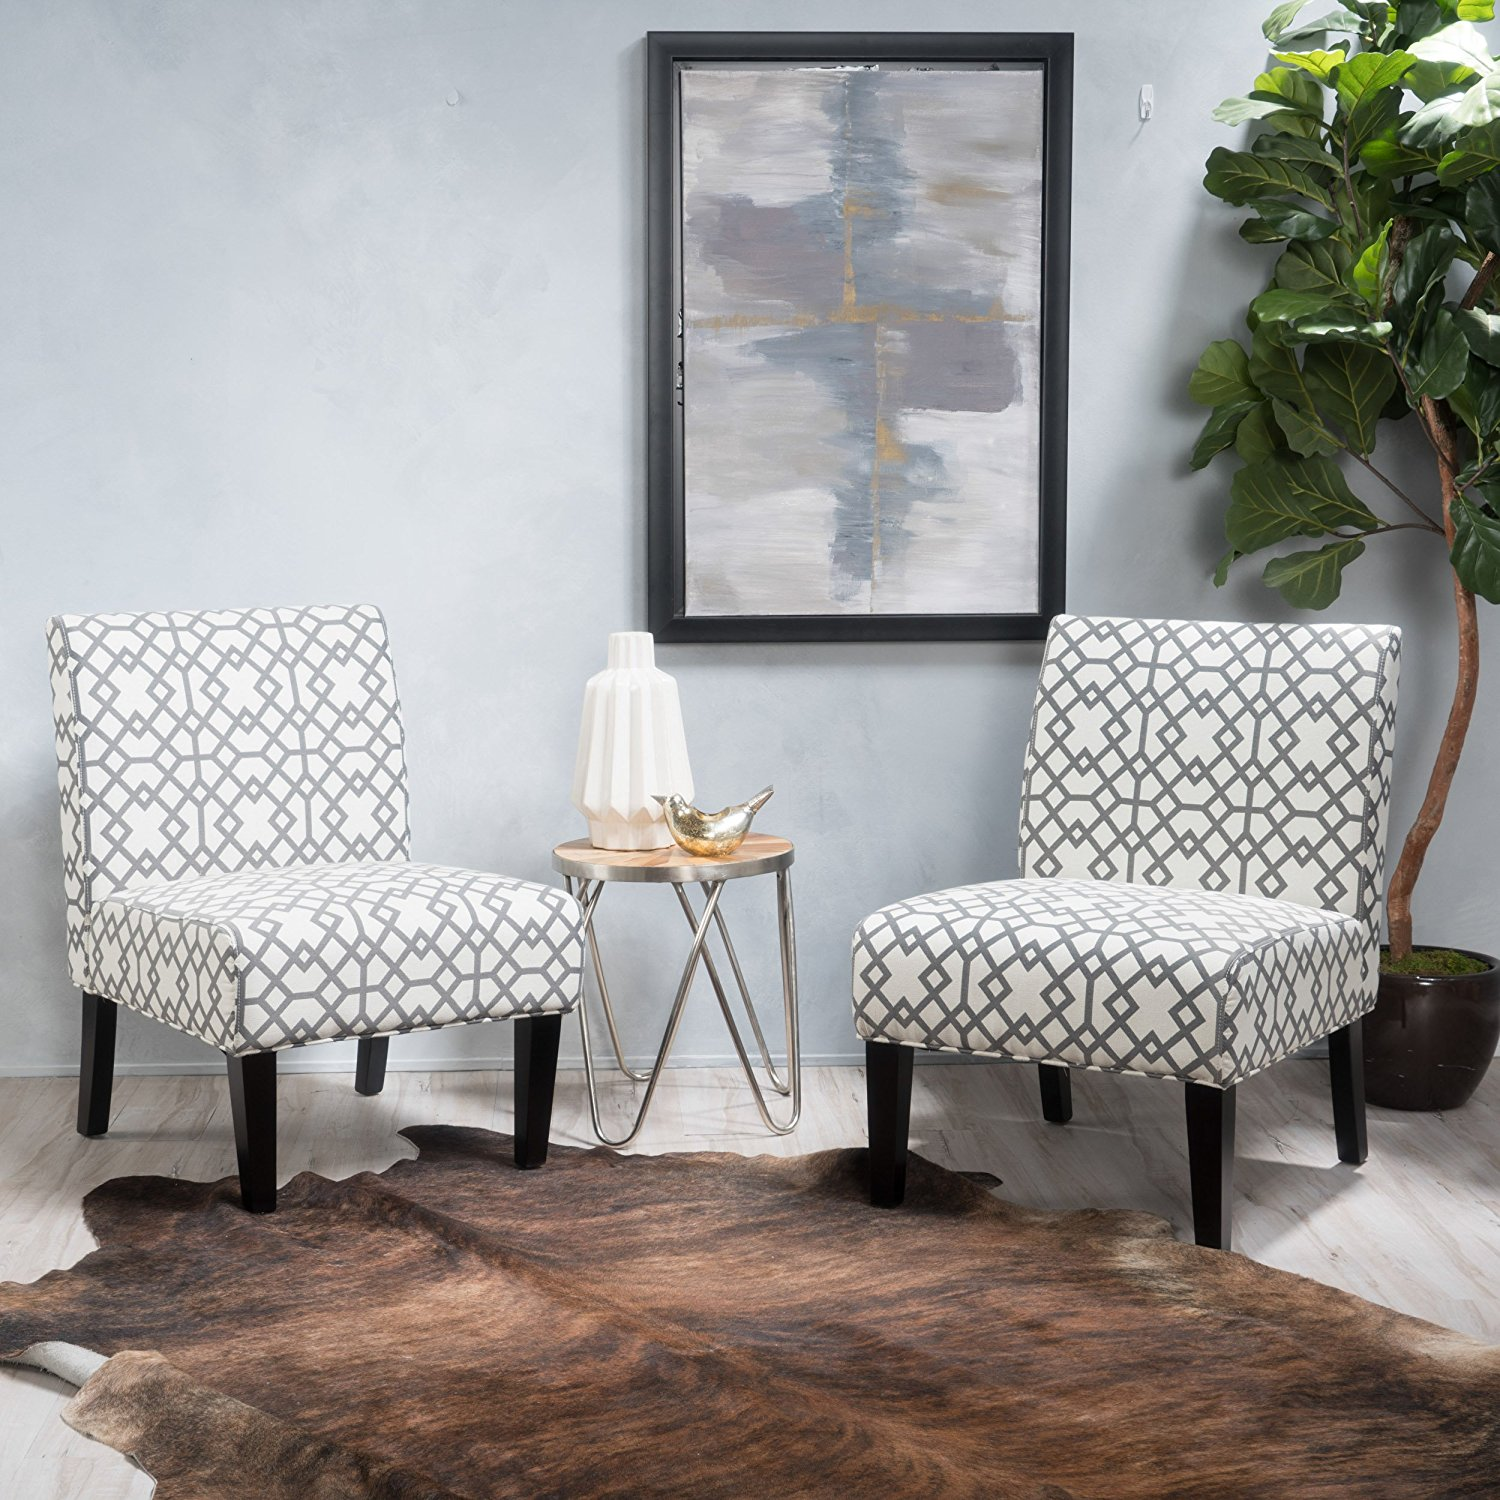 Kendal Grey Geometric Patterned Fabric Accent Chair (Set of 2)